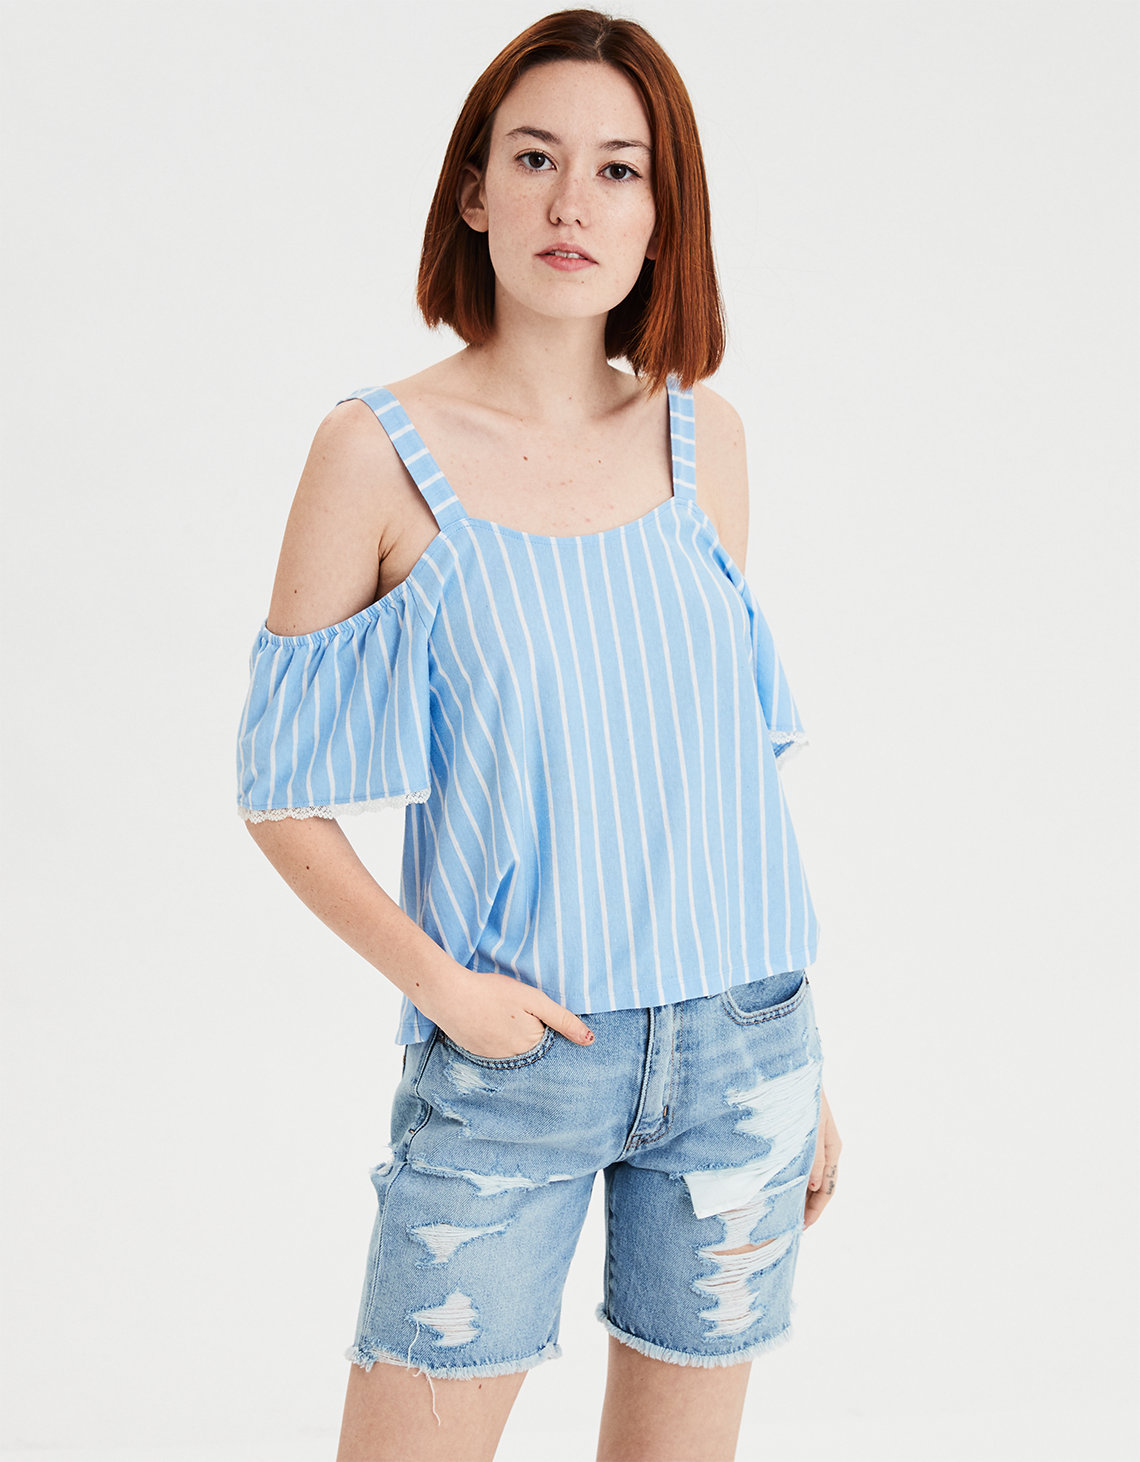 36ecfcd42bd89 AE Cold Shoulder Striped Top. Placeholder image. Product Image